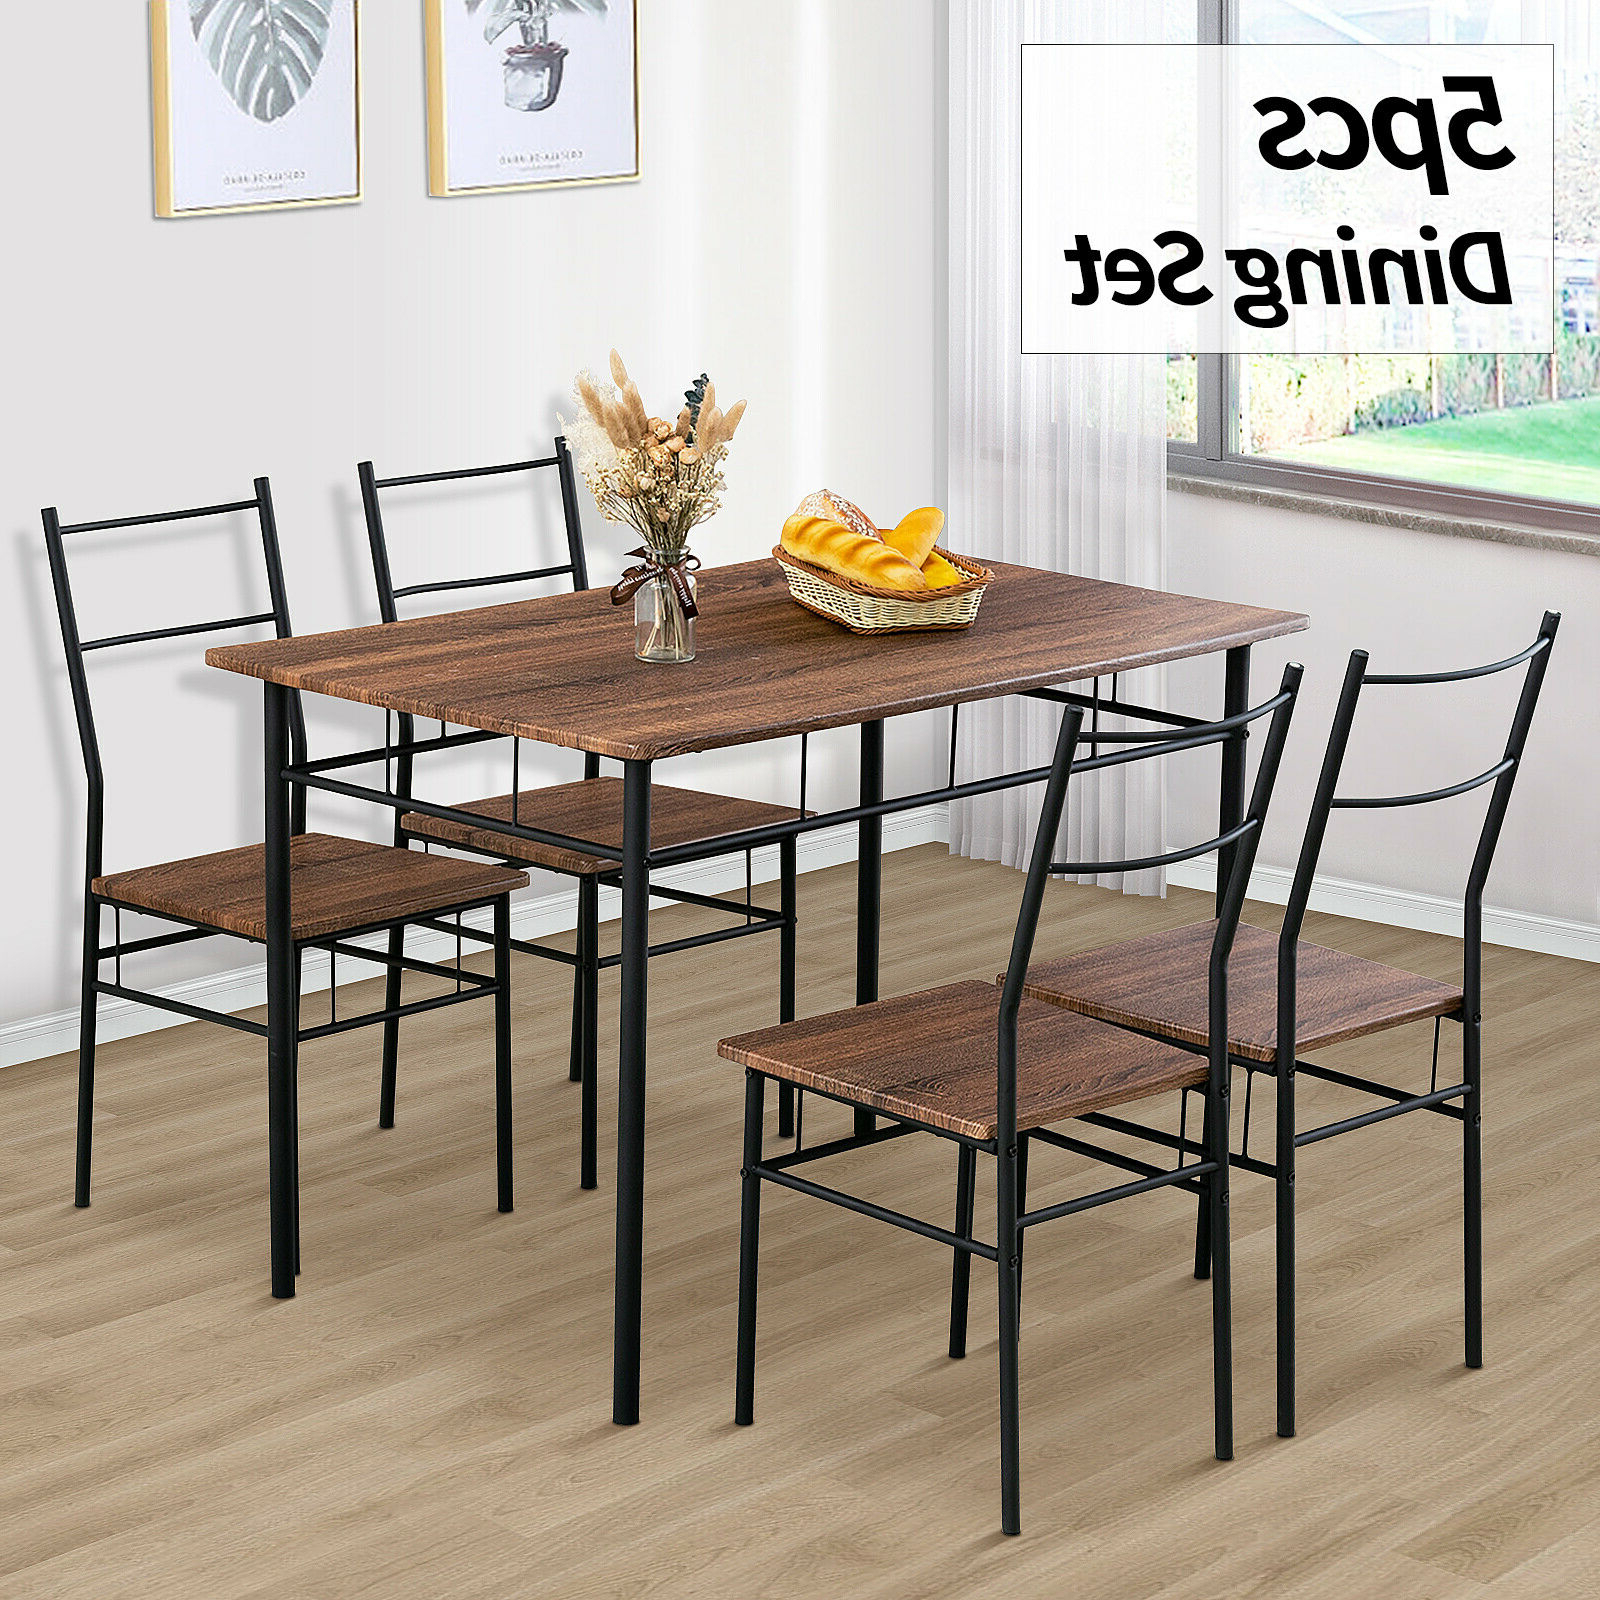 5 Piece Metal Dining Table Furniture Set 4 Chairs Wood Top Dining Room Brown Within Best And Newest Wood Top Dining Tables (Gallery 7 of 30)